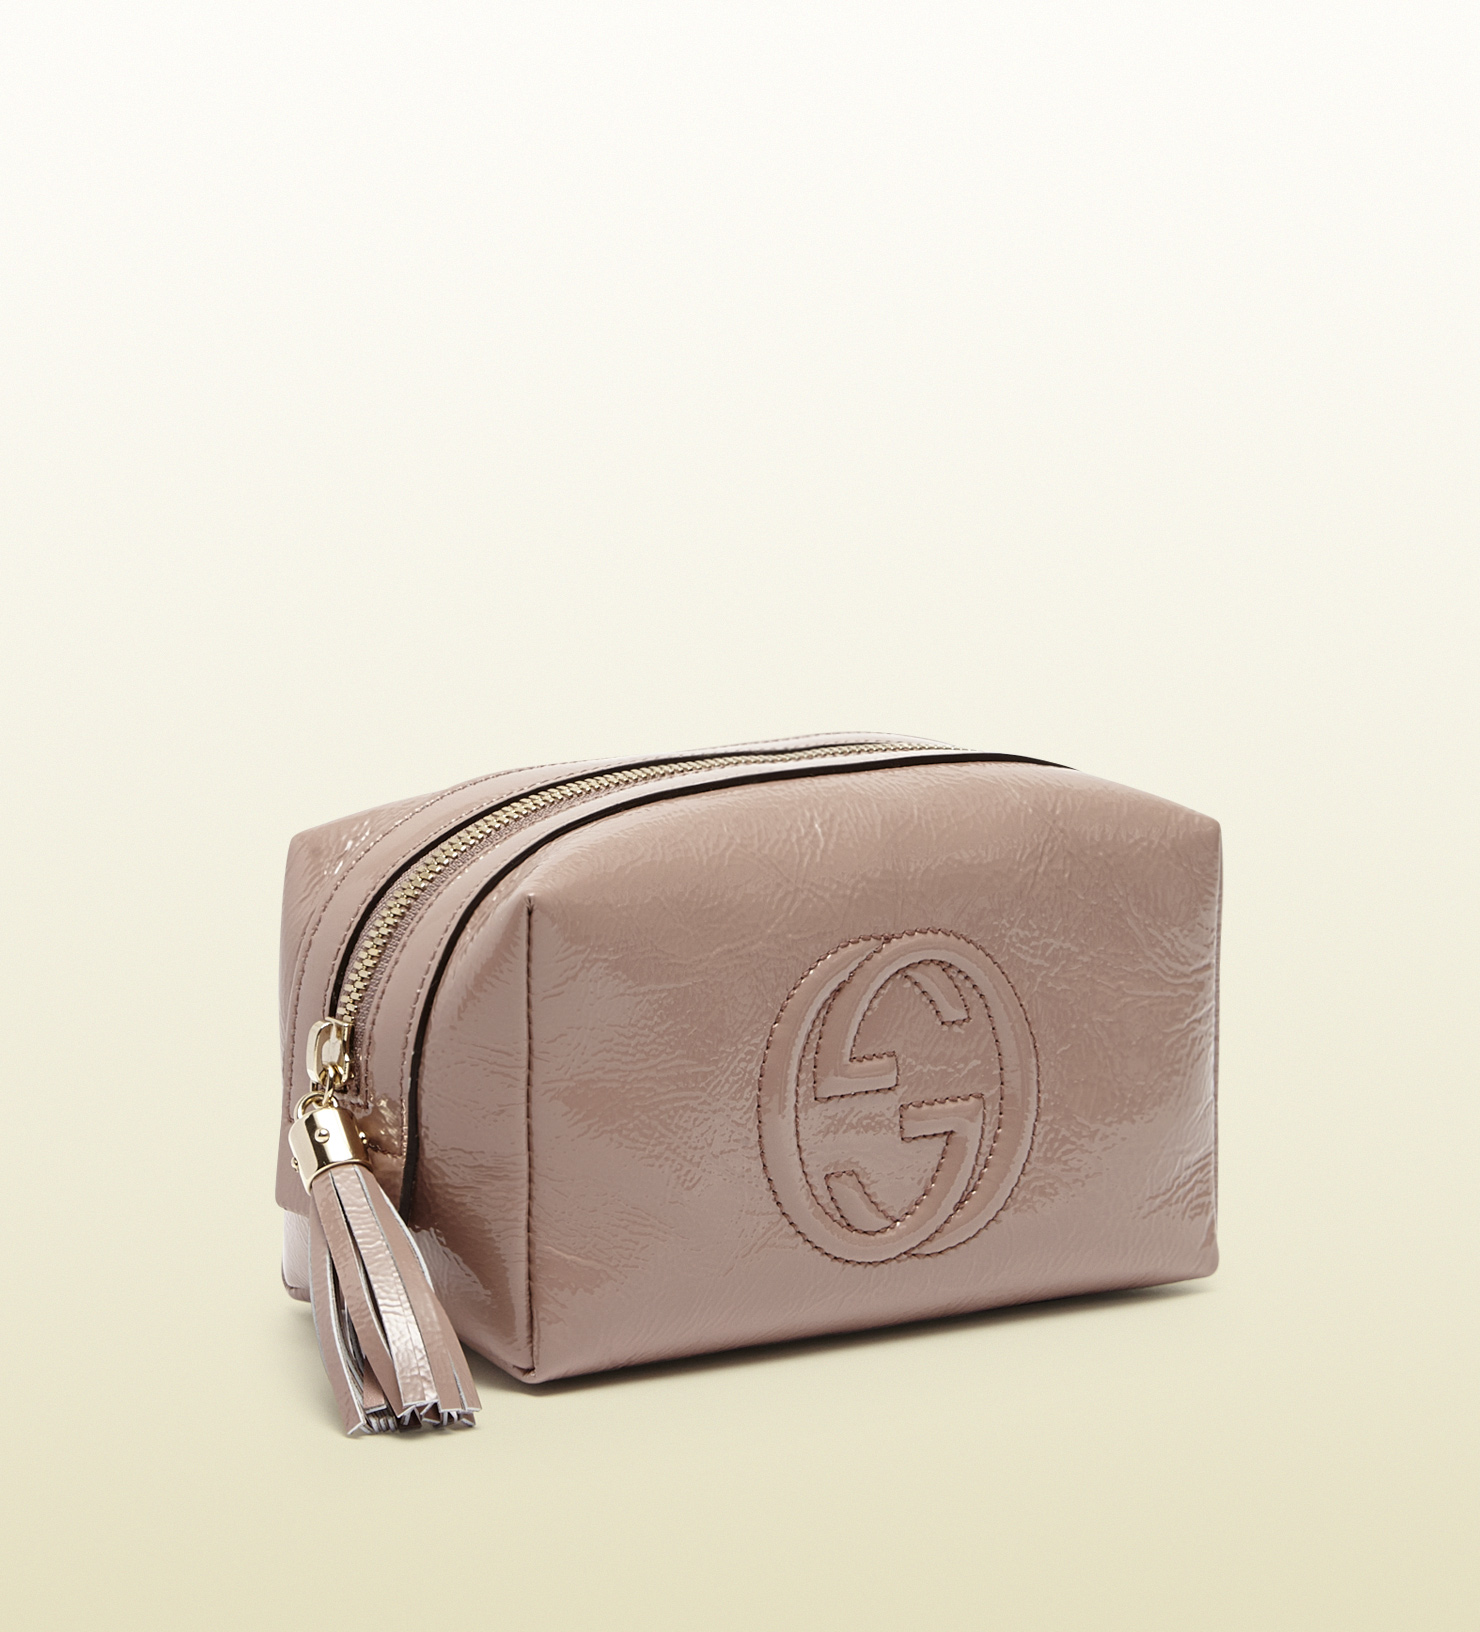 cae15b2c105 Lyst - Gucci Soho Patent Leather Cosmetic Case in Pink